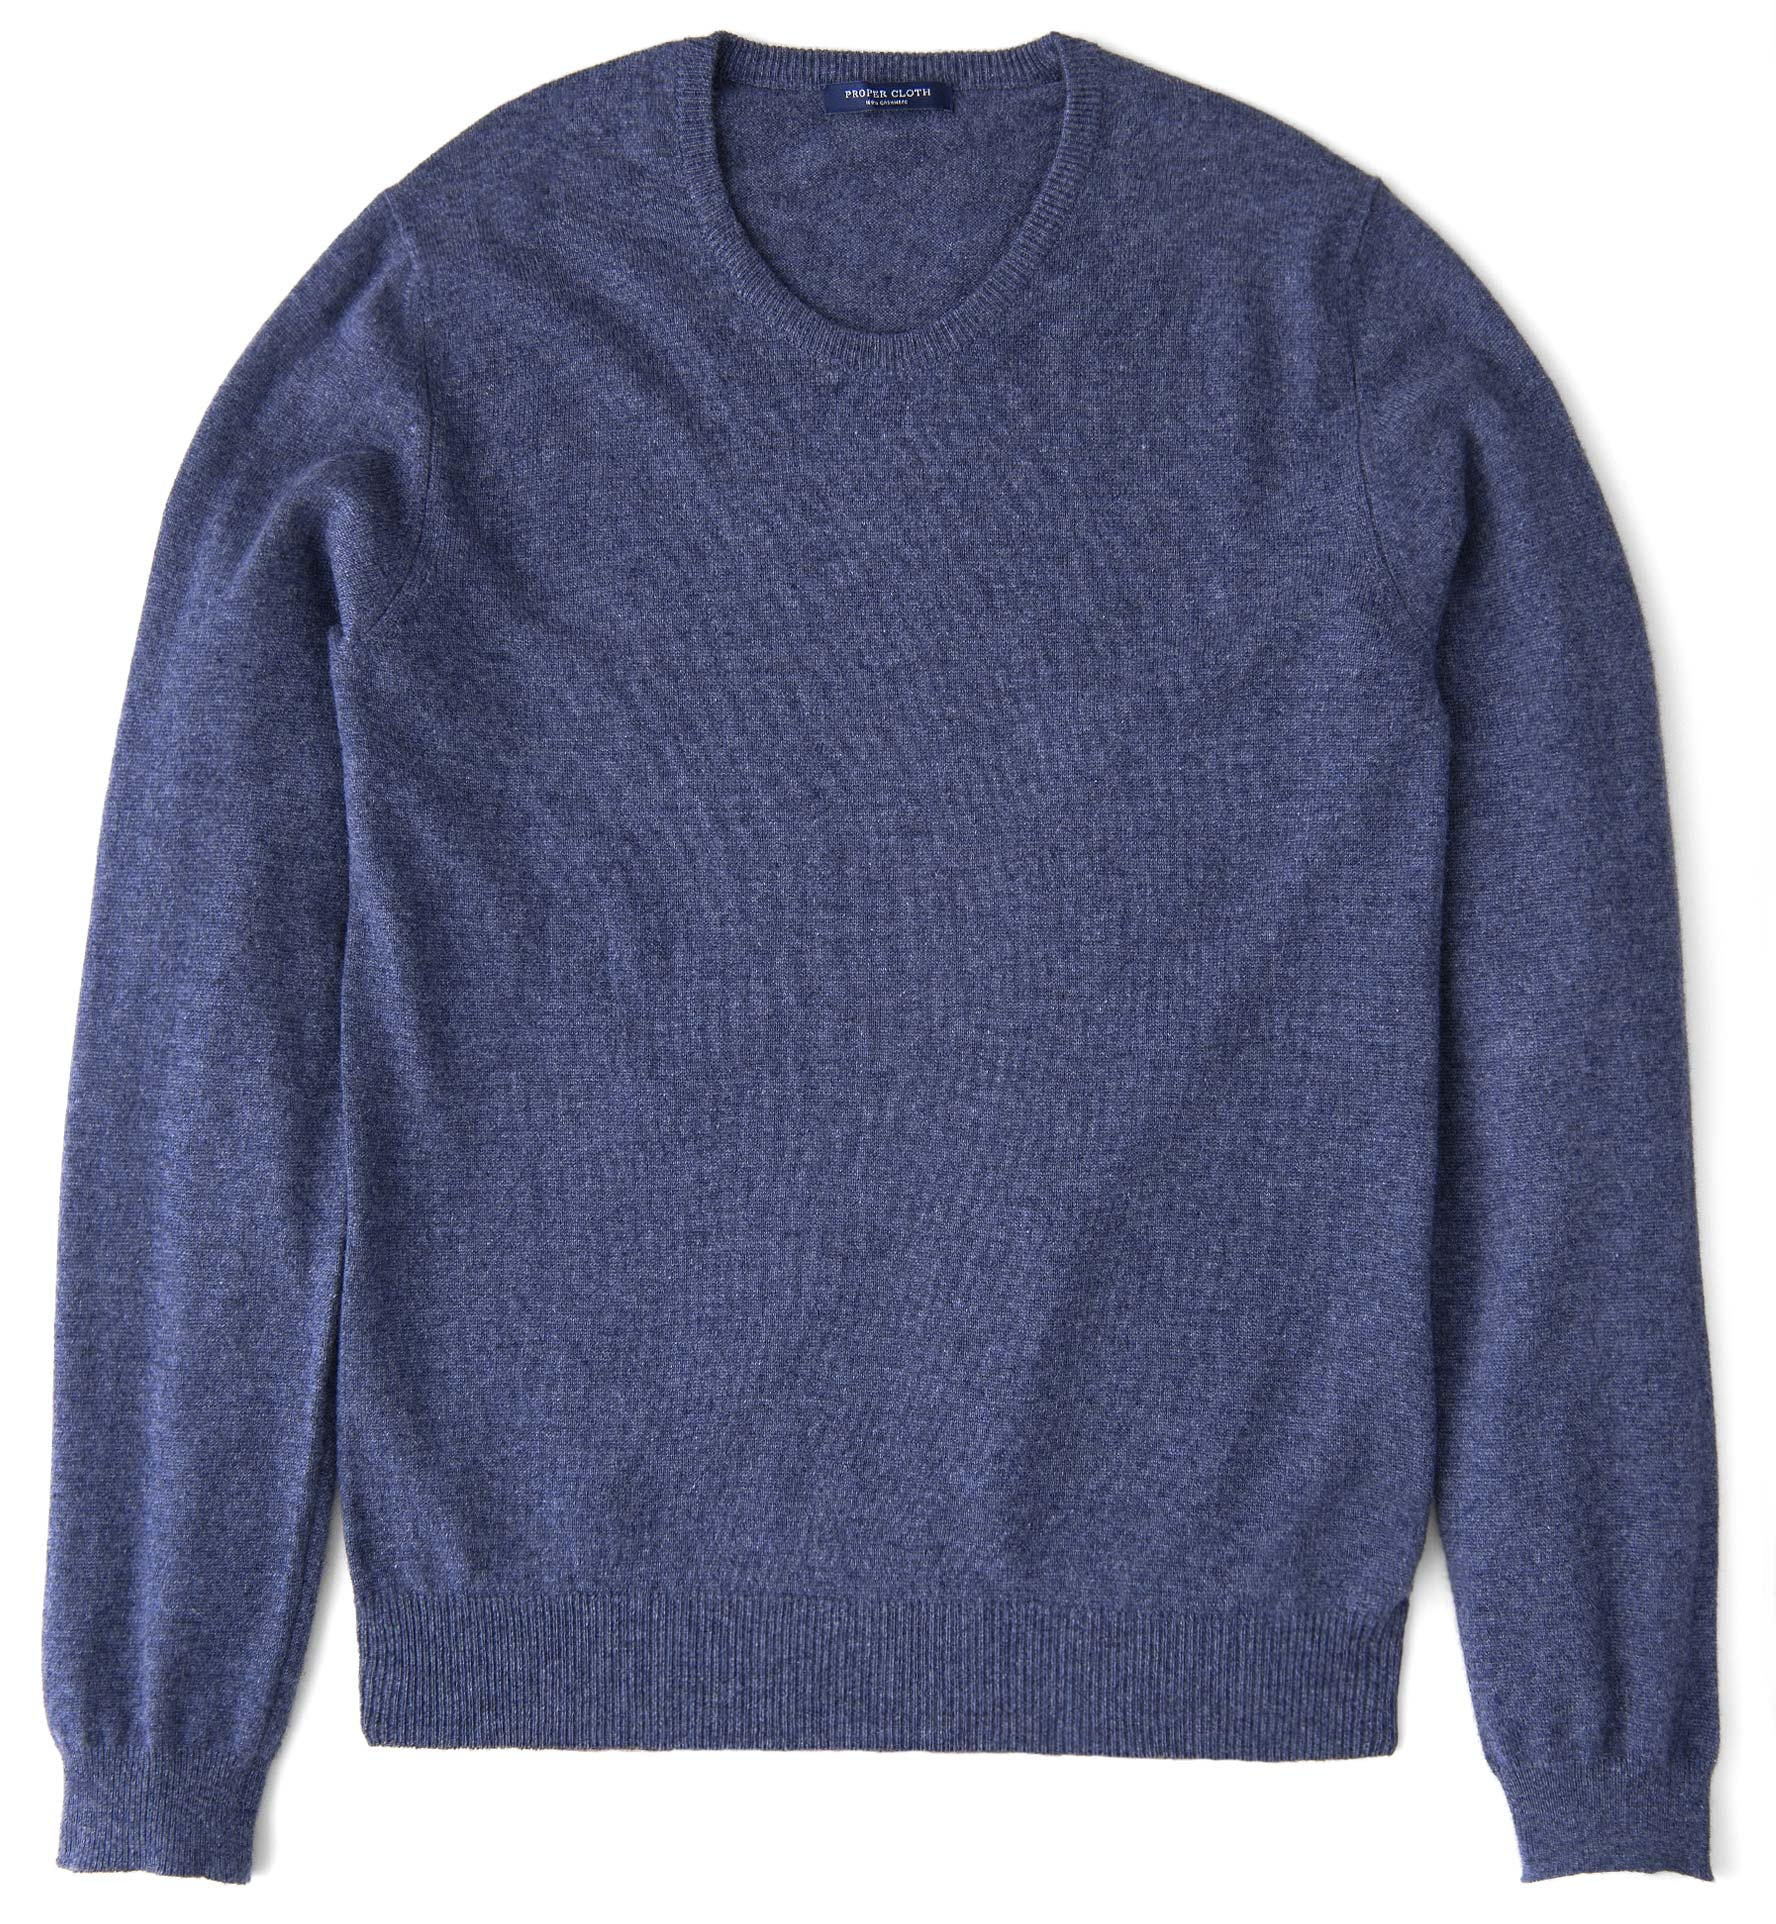 Zoom Image of Slate Blue Cashmere Crewneck Sweater